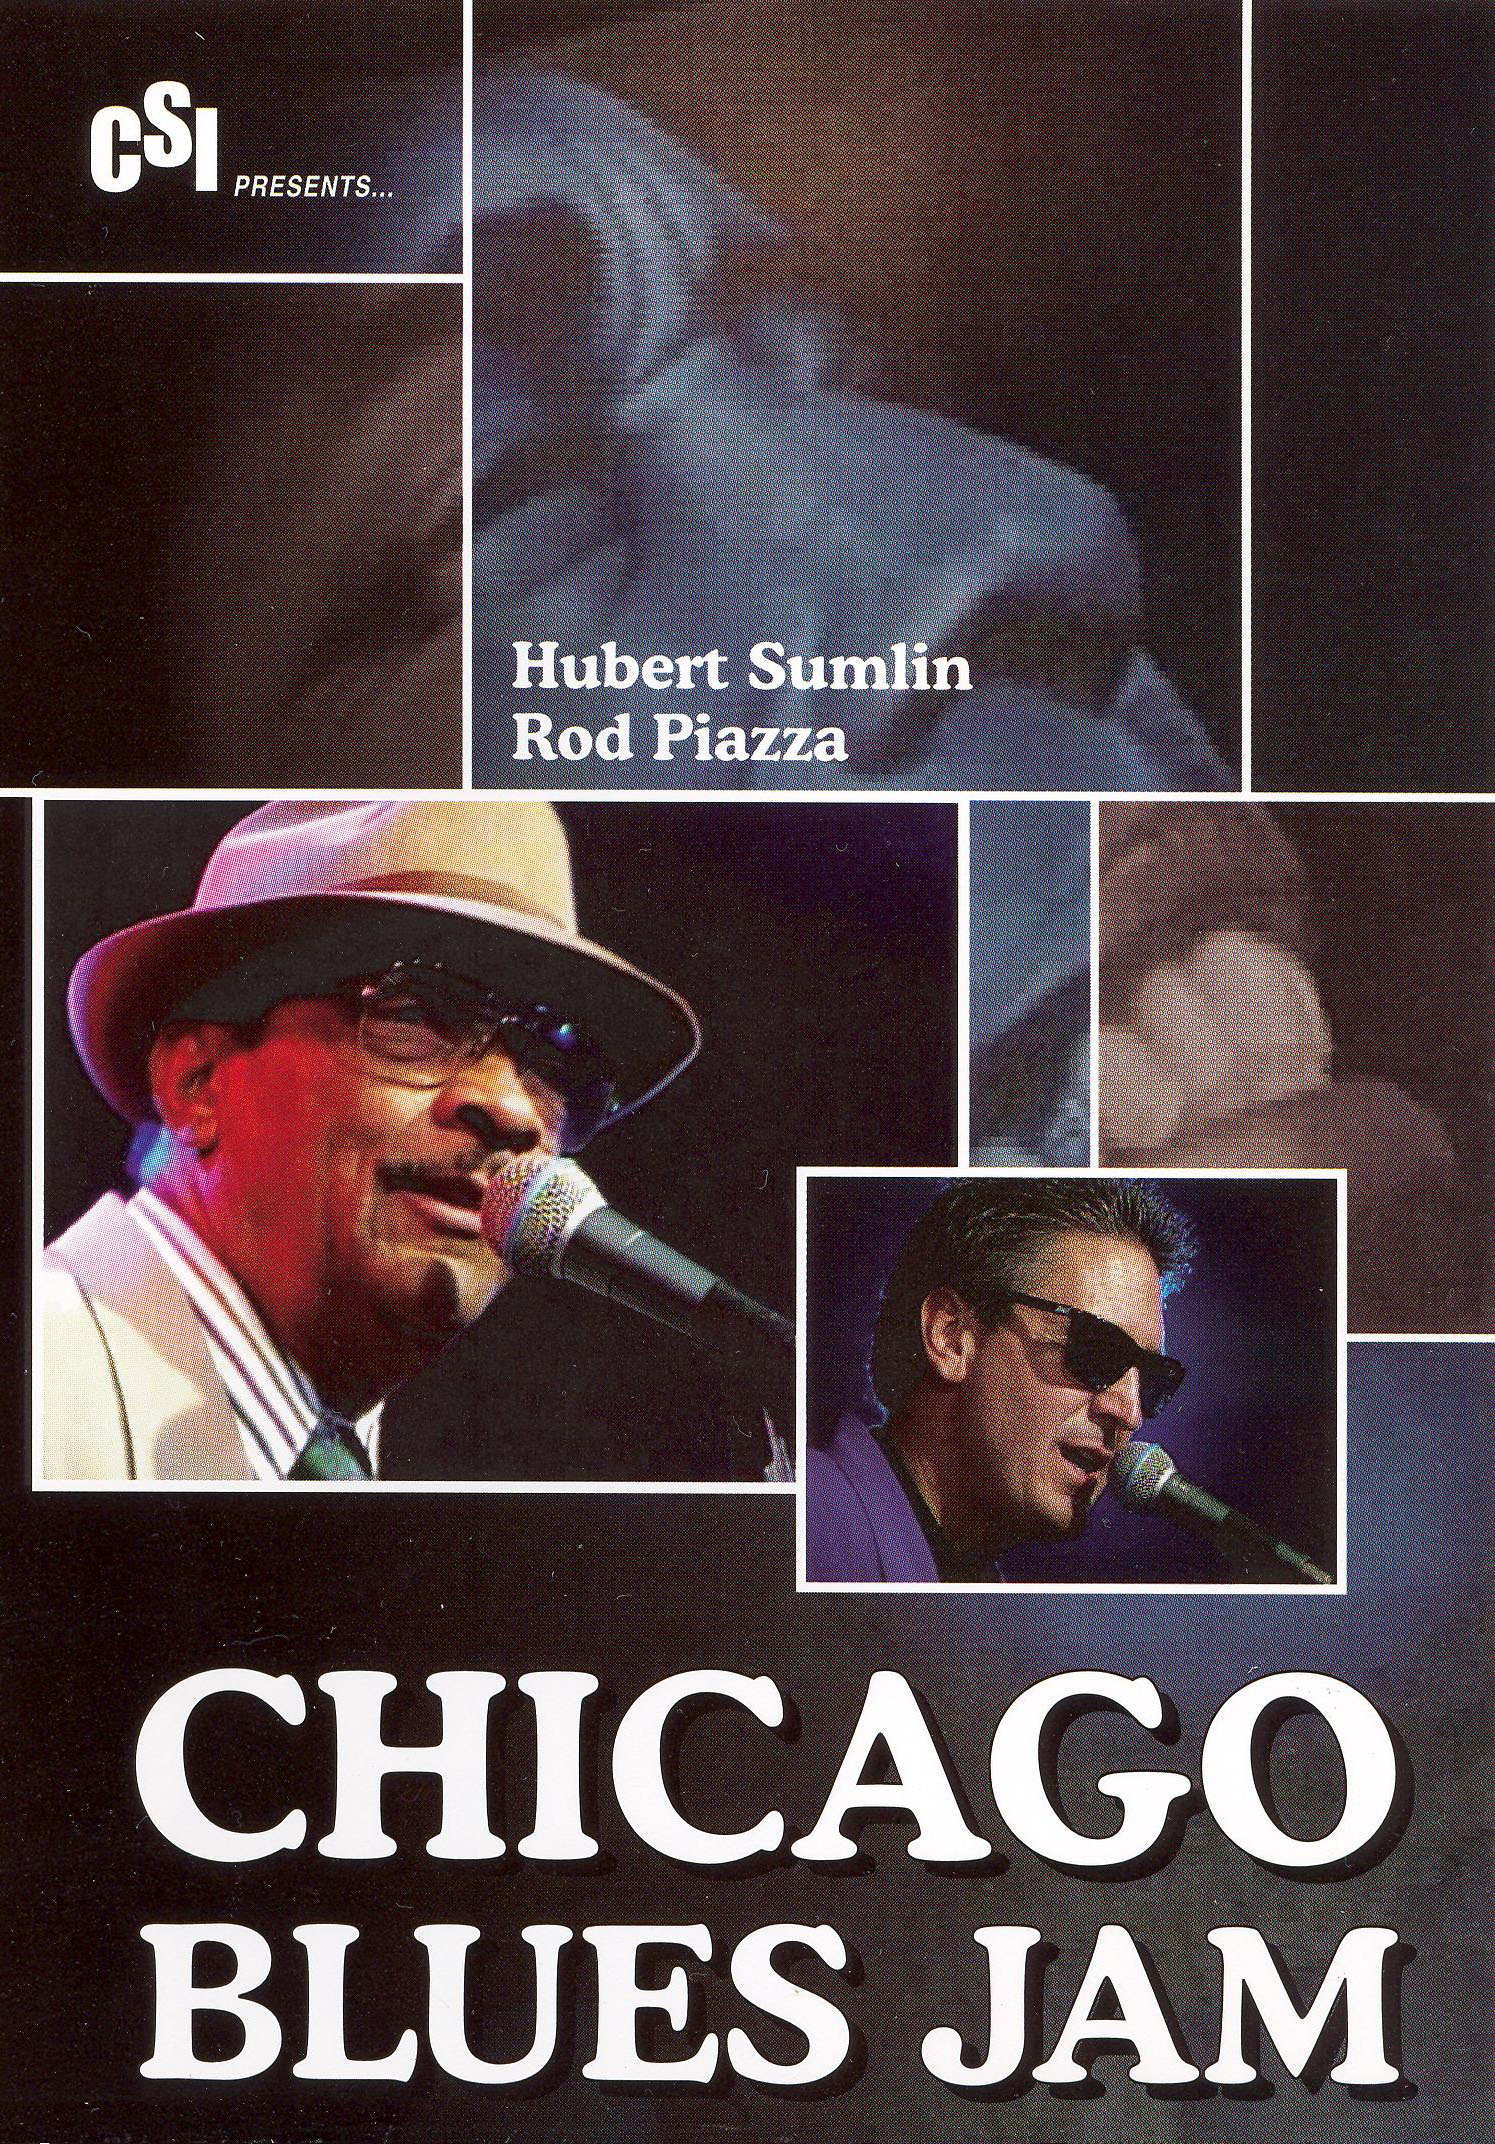 Chicago Blues Jam: Hubert Sumlin/Rod Piazza